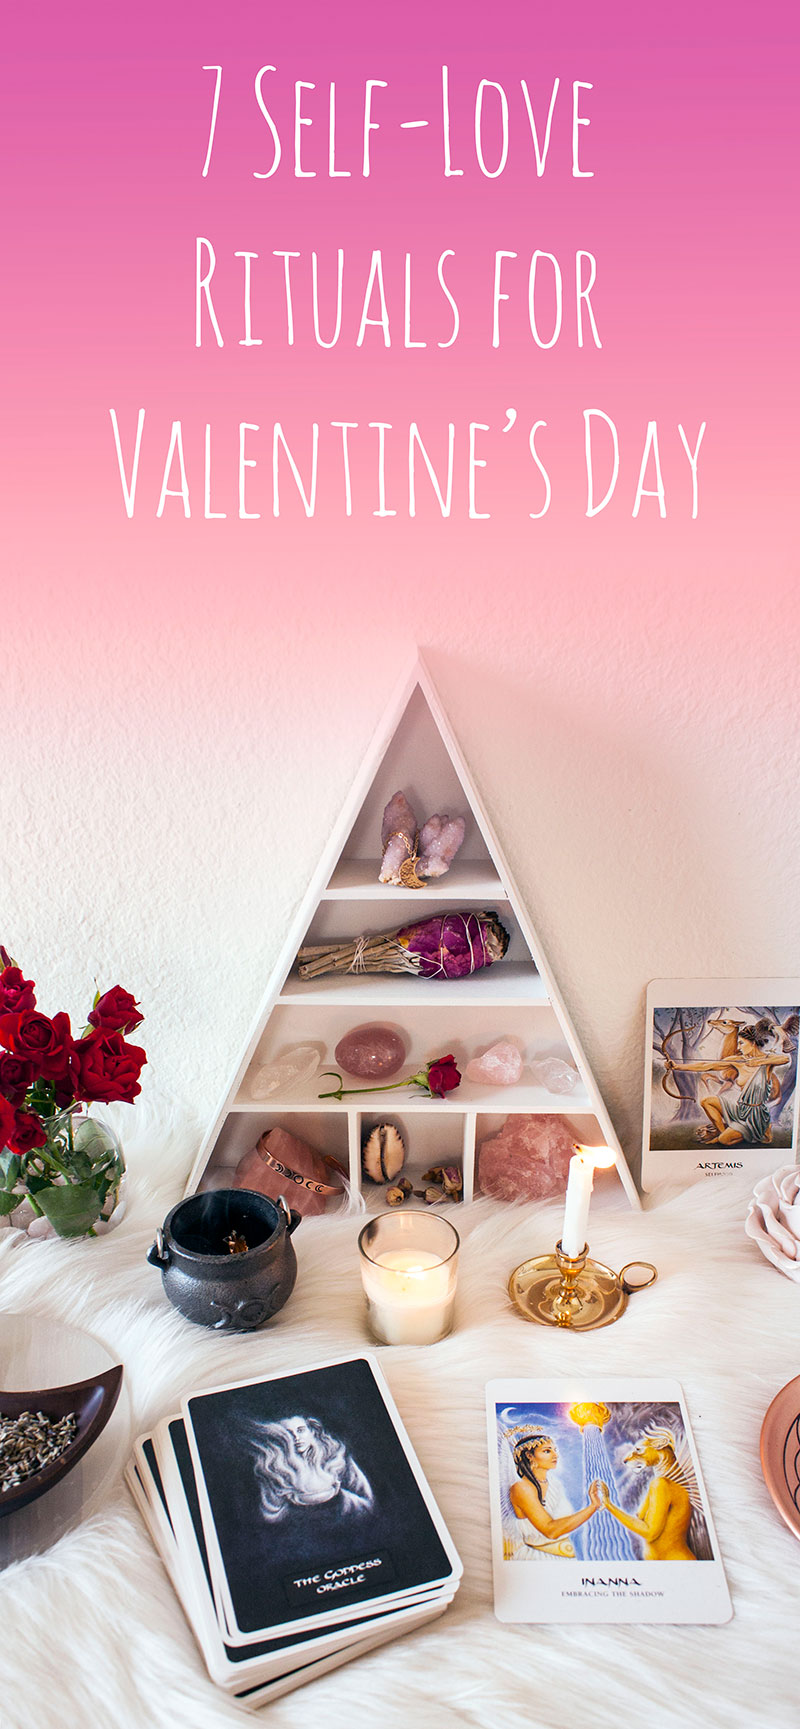 Pic3-self-love-rituals-for-valentines-day